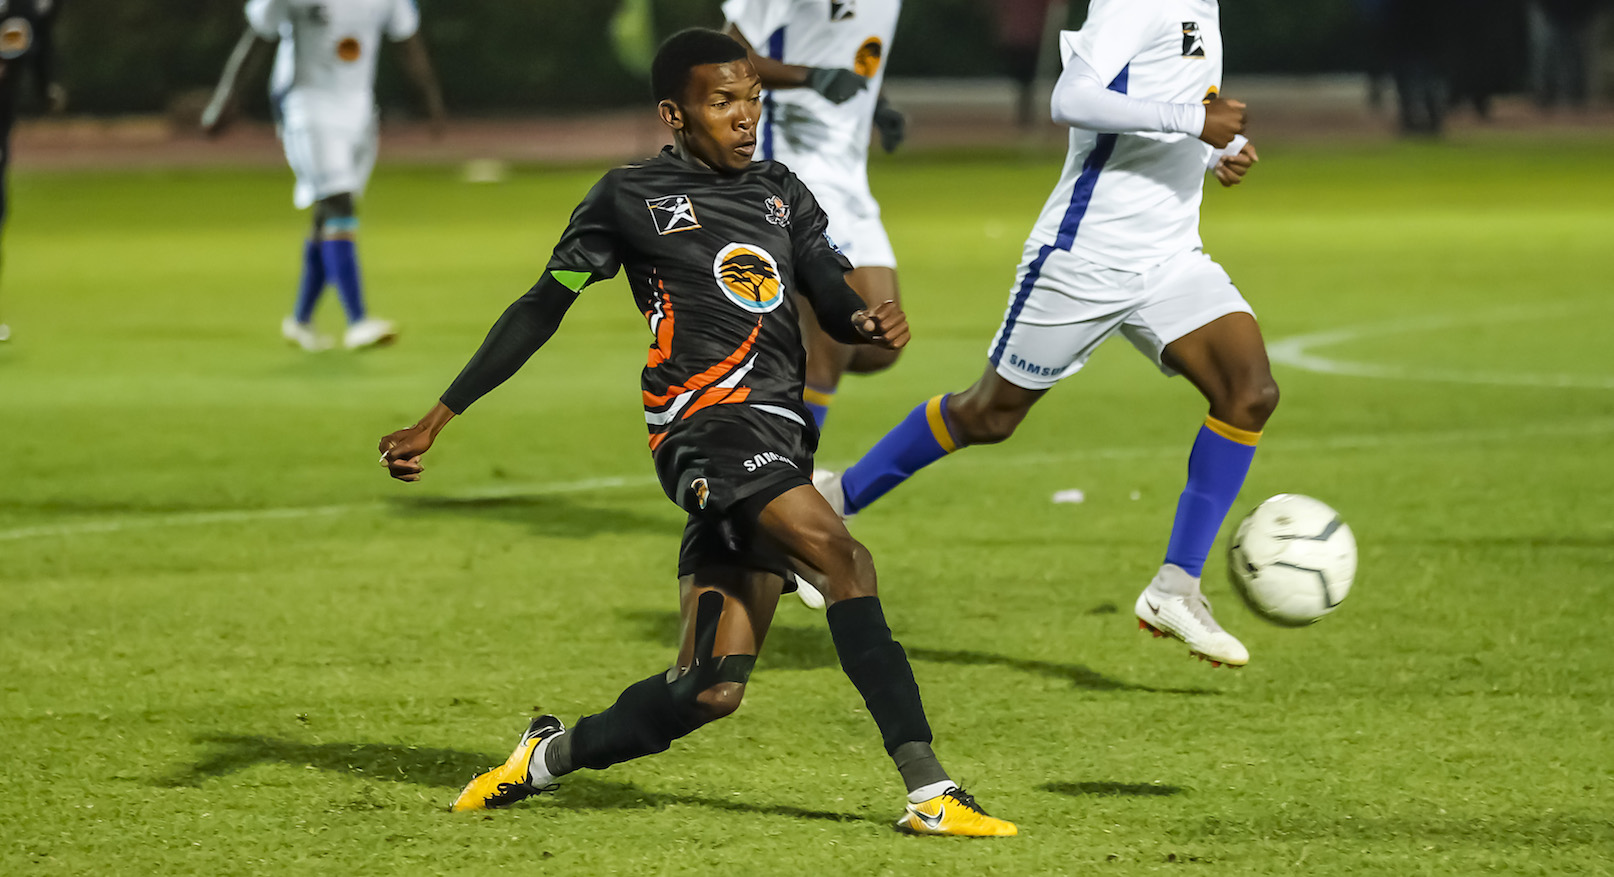 Mokete Mogaila of UJ during the FNB Varsity Cup Soccer match between UJ and Wits at UJ Soweto Campus in Johannesburg on the 9th August 2018. Photo by Dominic Barnardt / VarsitySports